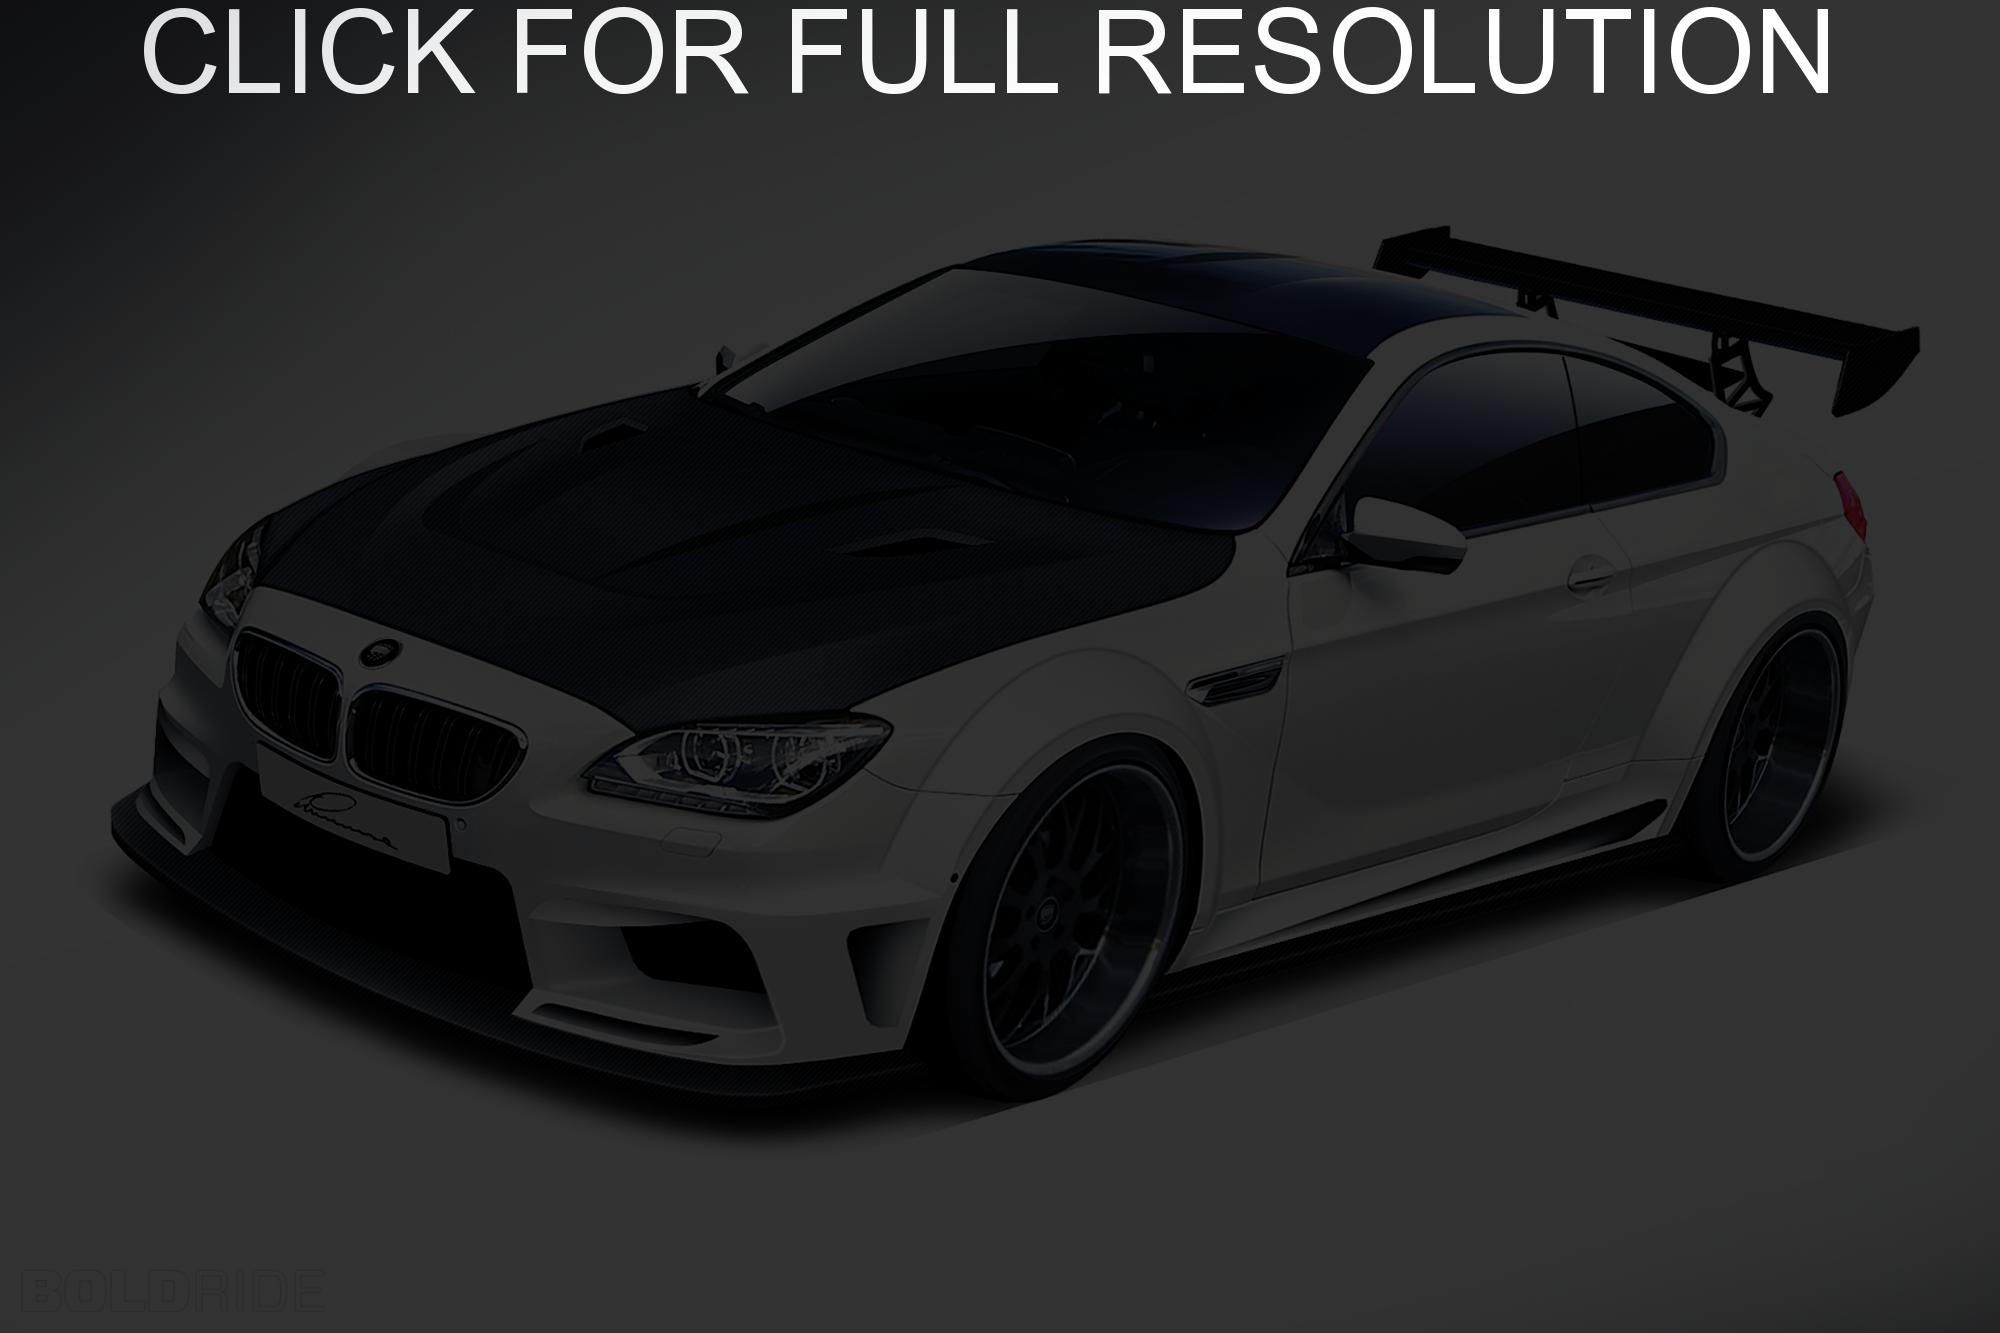 BMW M6 Auto & Car Wallpapers HD | Iphone | Android| Desktop 5 Wallpaper